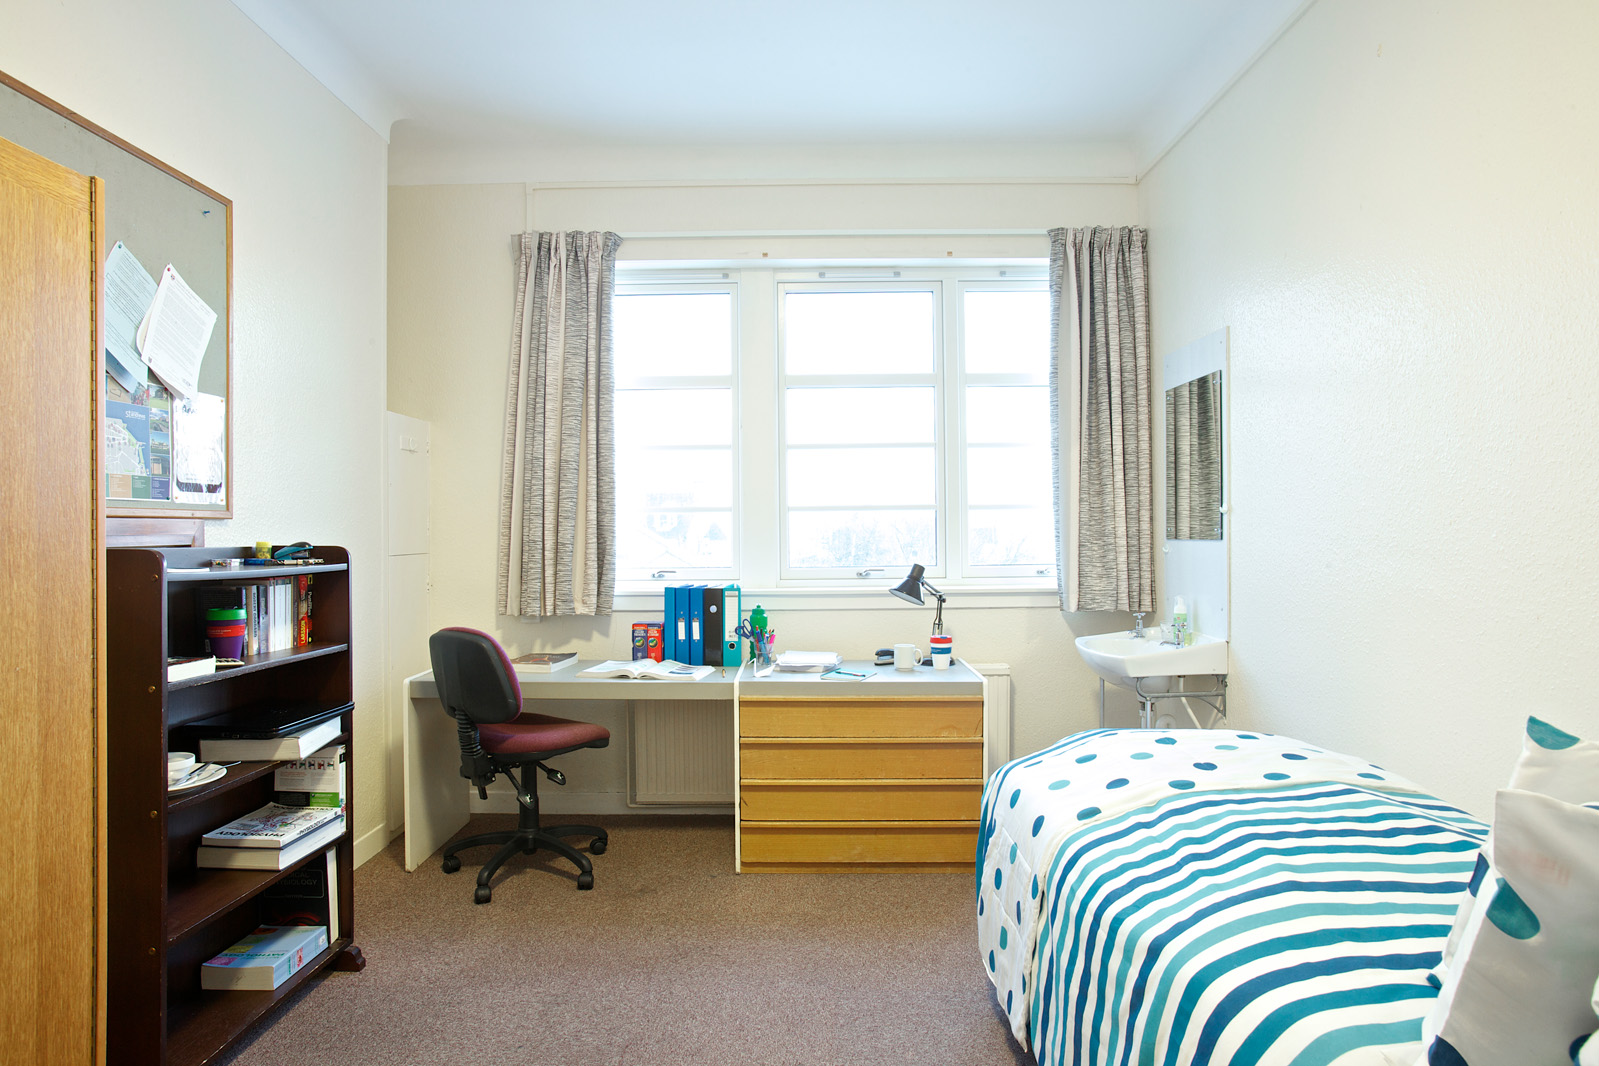 How To Rent Room For Students